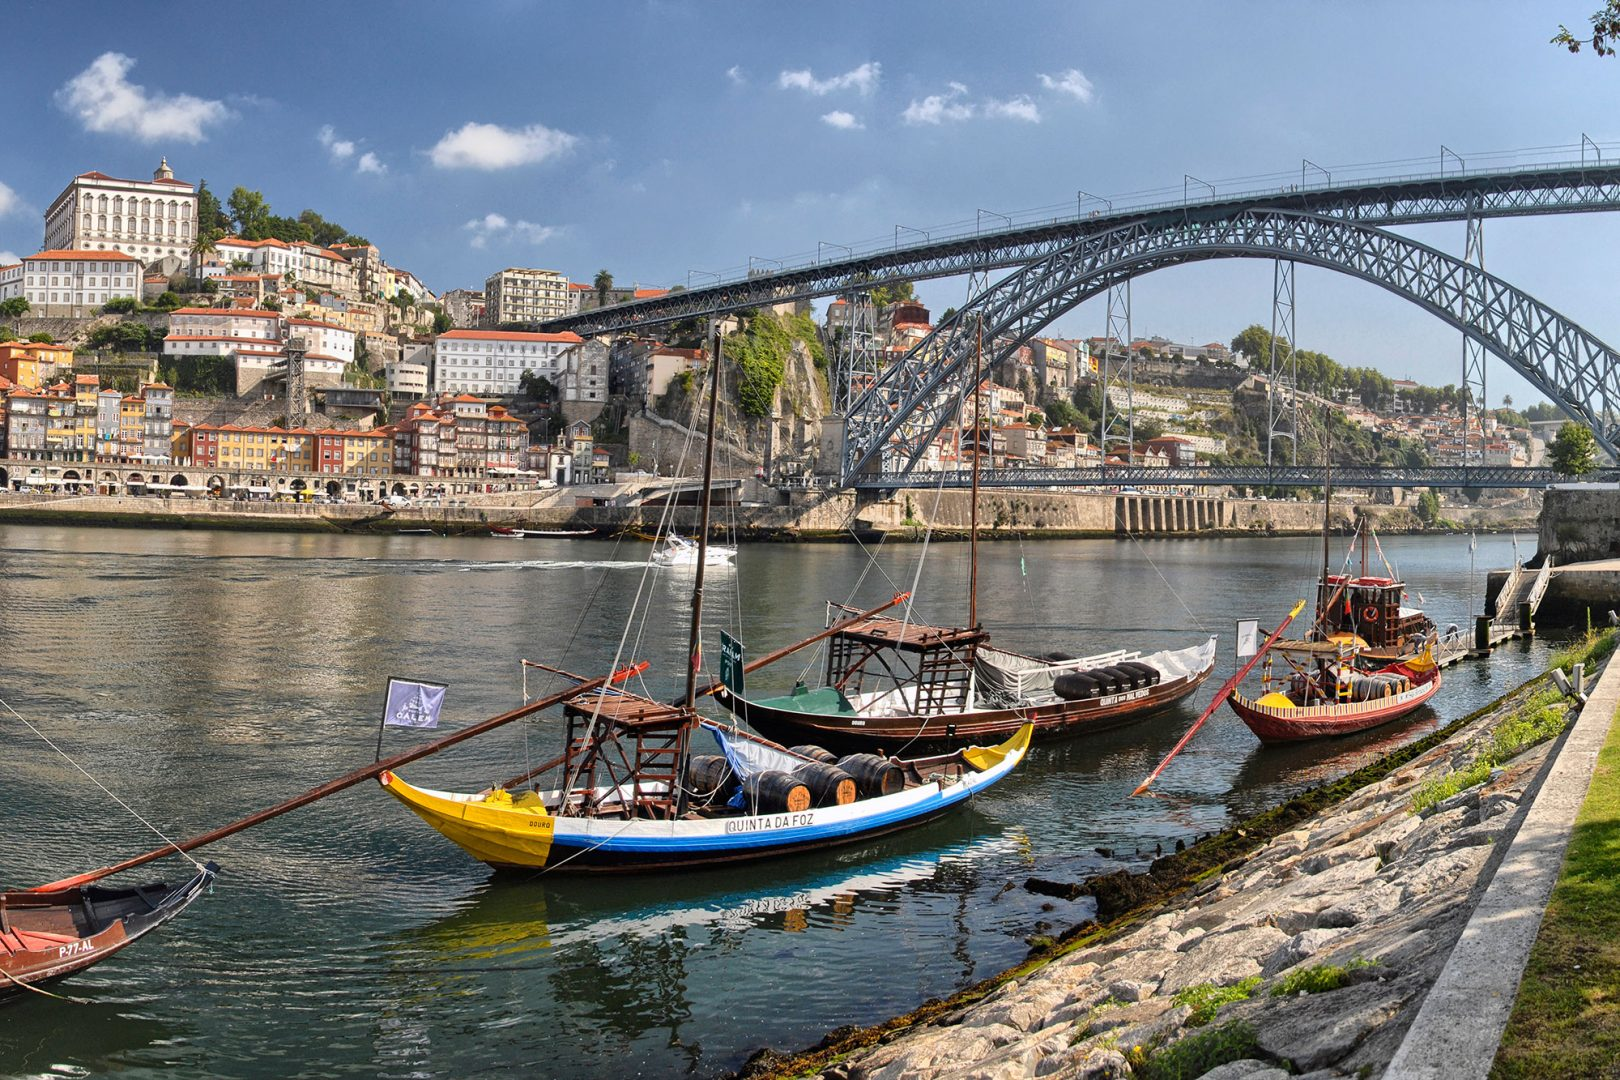 Luís I Bridge, Portugal